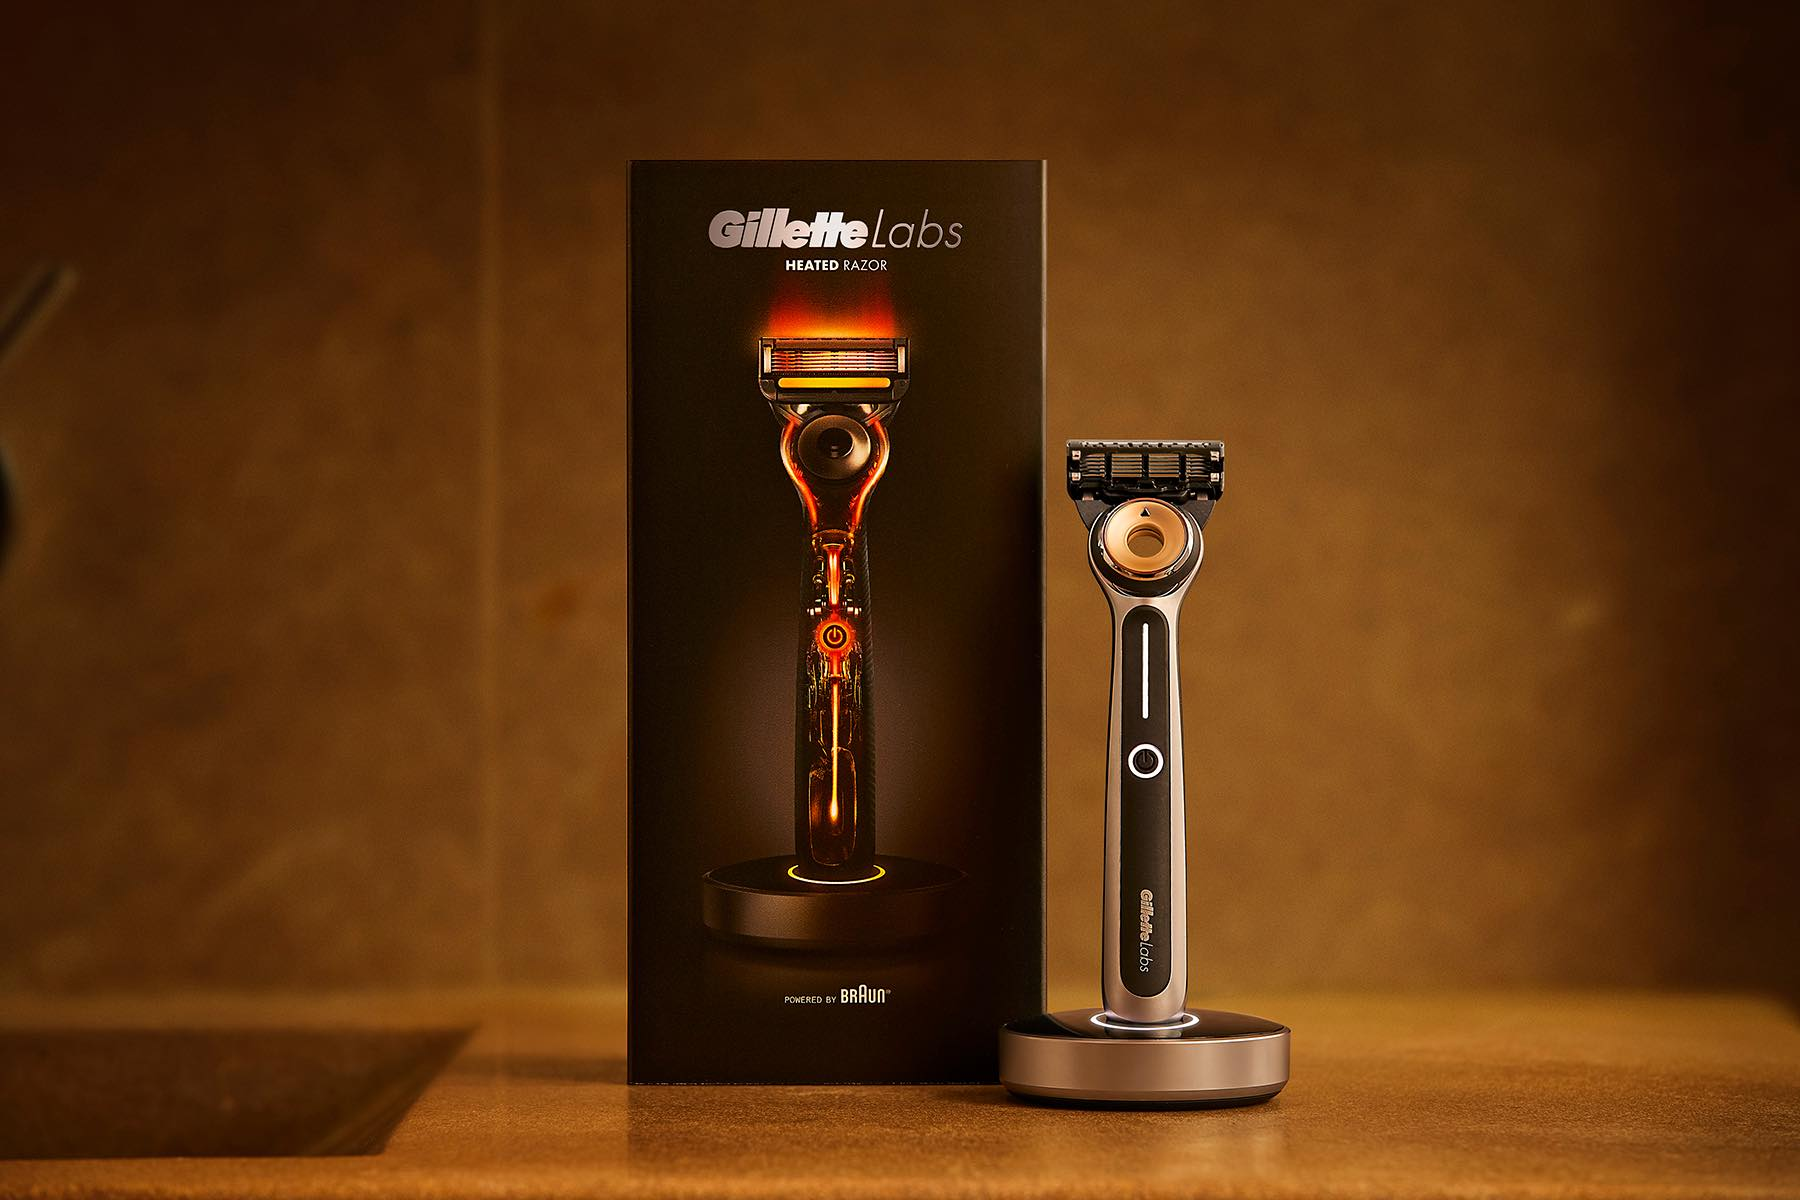 The heated razor by GilletteLabs. ($200)